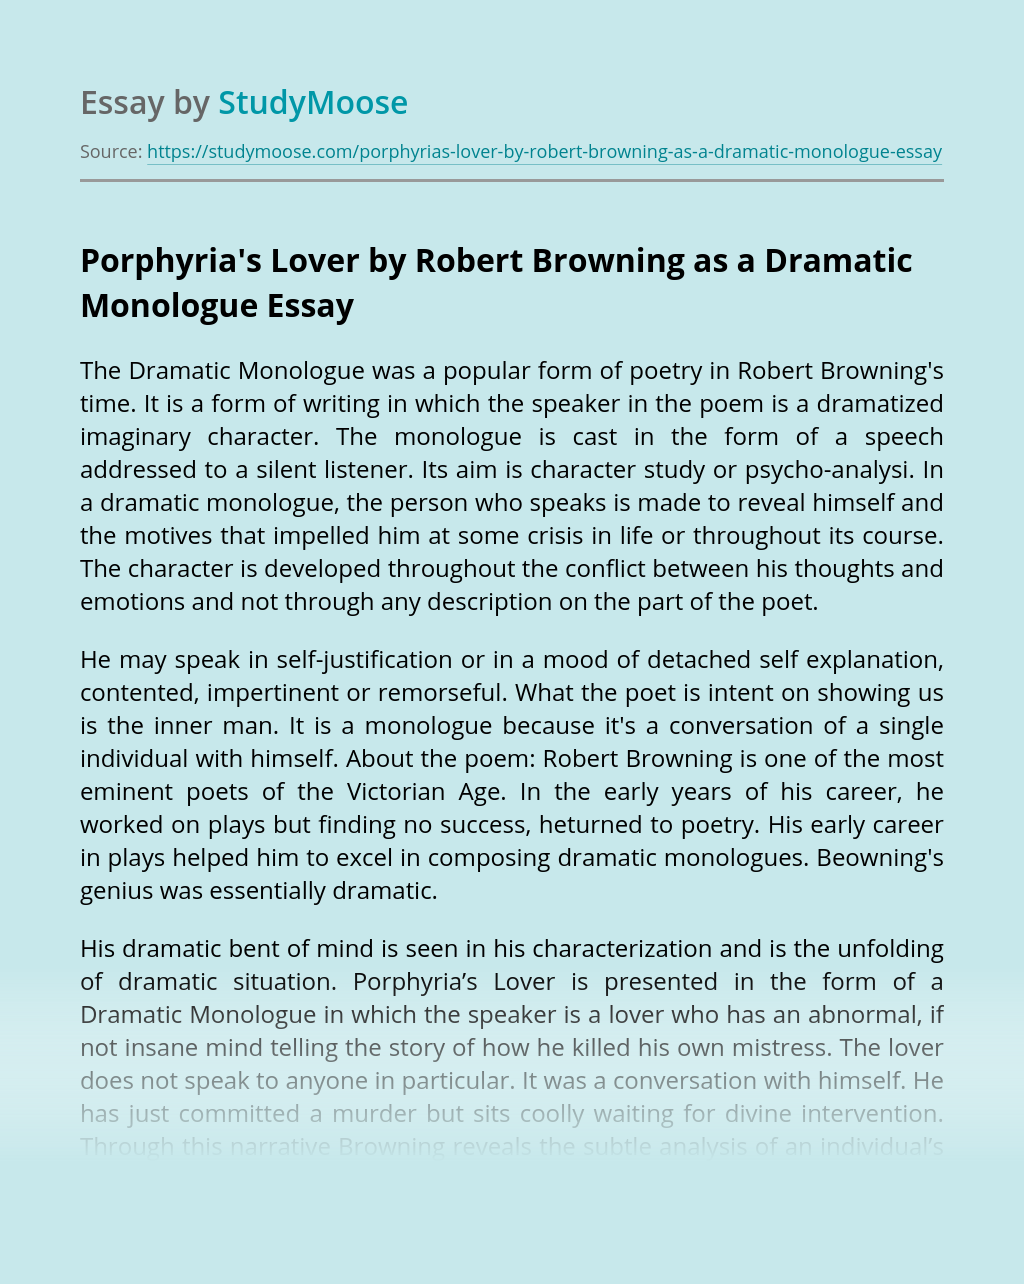 Porphyria's Lover by Robert Browning as a Dramatic Monologue